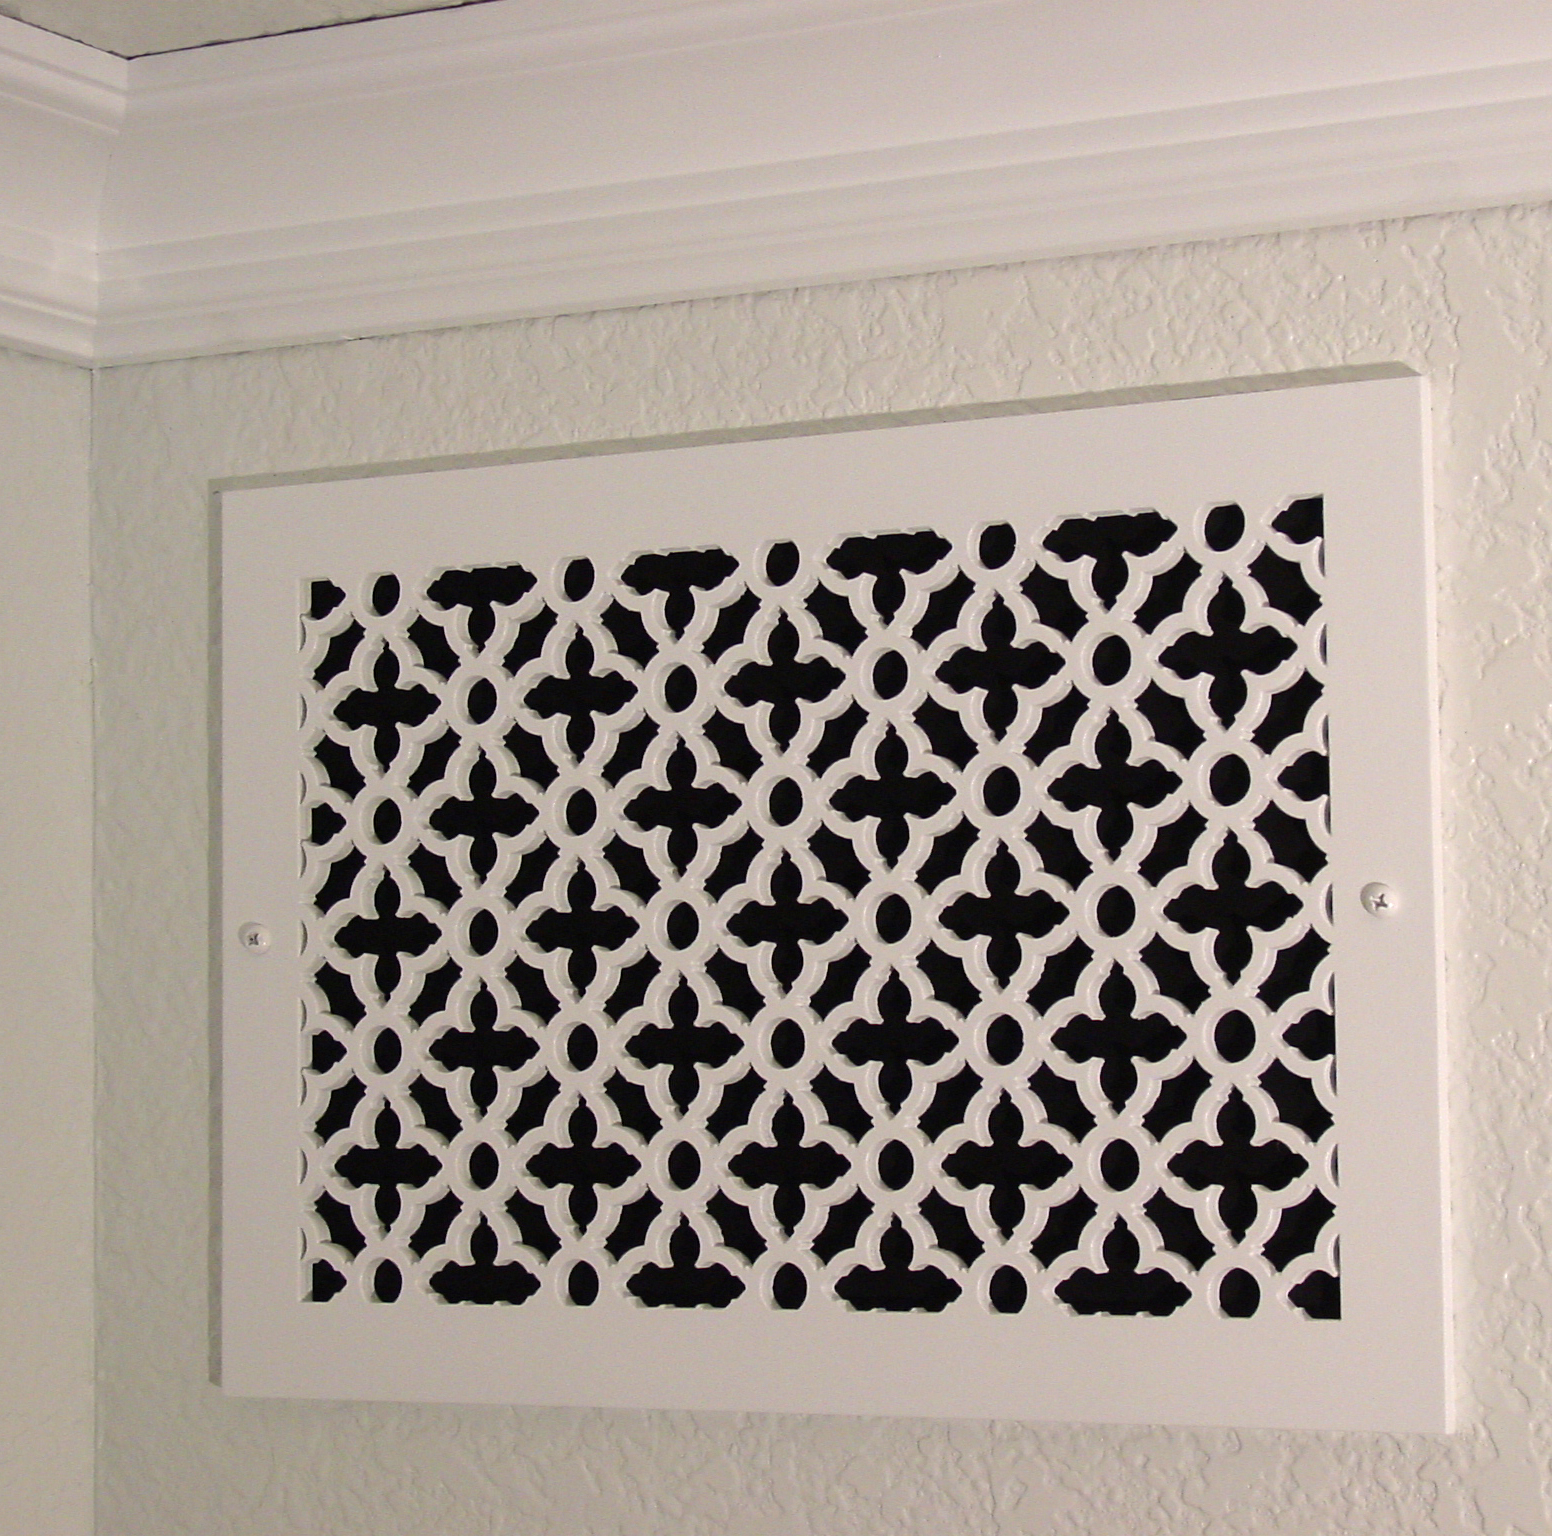 heritage wall vent decor grille grate cover